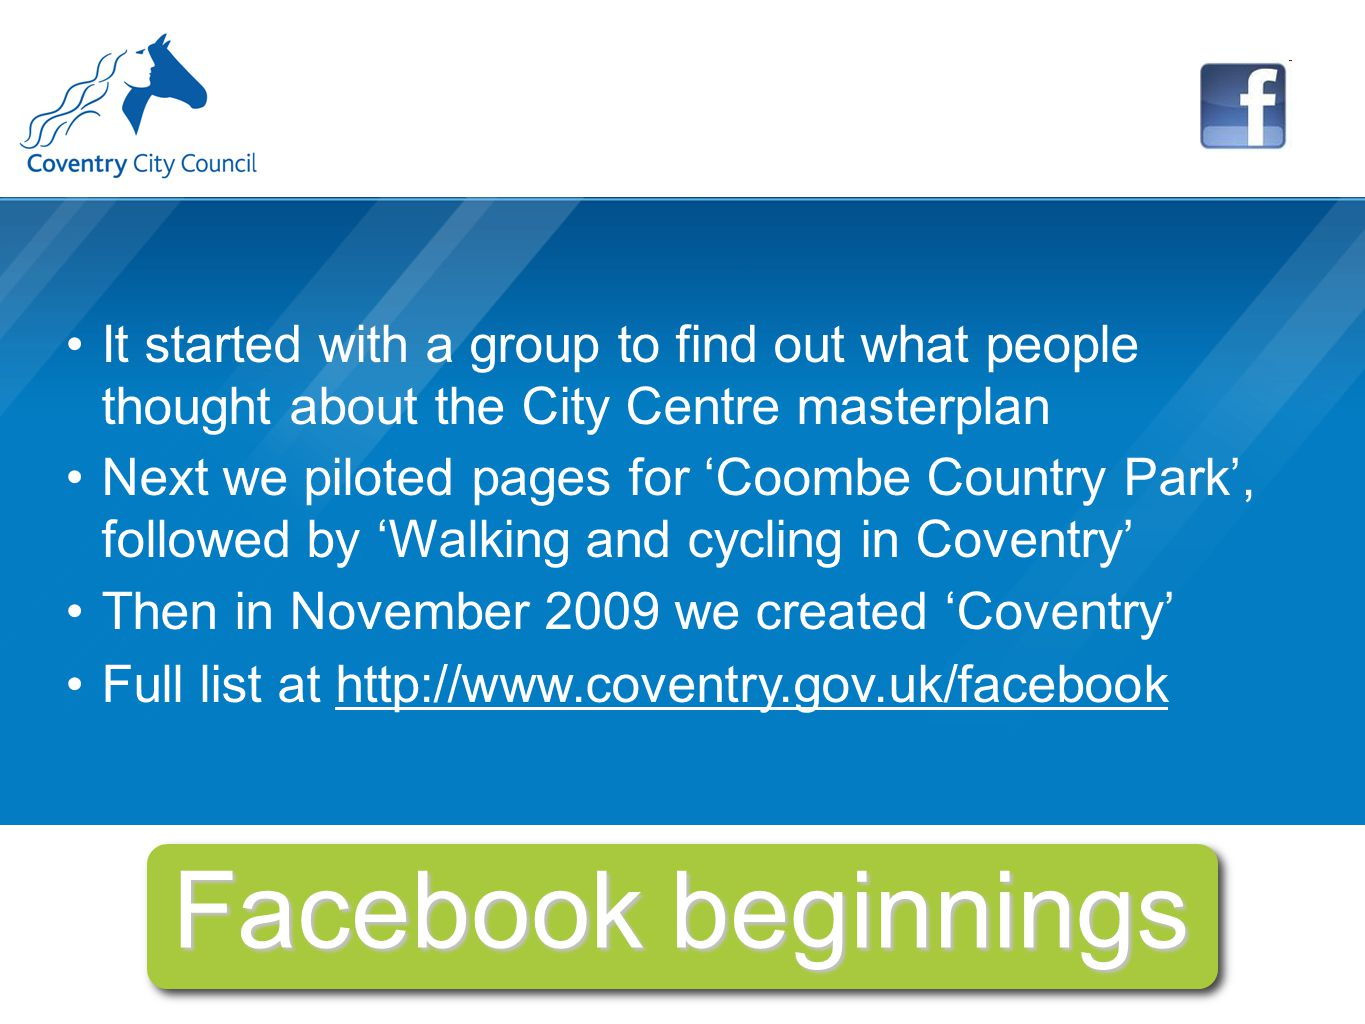 Facebook beginnings It started with a group to find out what people thought about the City Centre masterplan Next we piloted pages for 'Coombe Country Park', followed by 'Walking and cycling in Coventry' Then in November 2009 we created 'Coventry' Full list at http://www.coventry.gov.uk/facebook